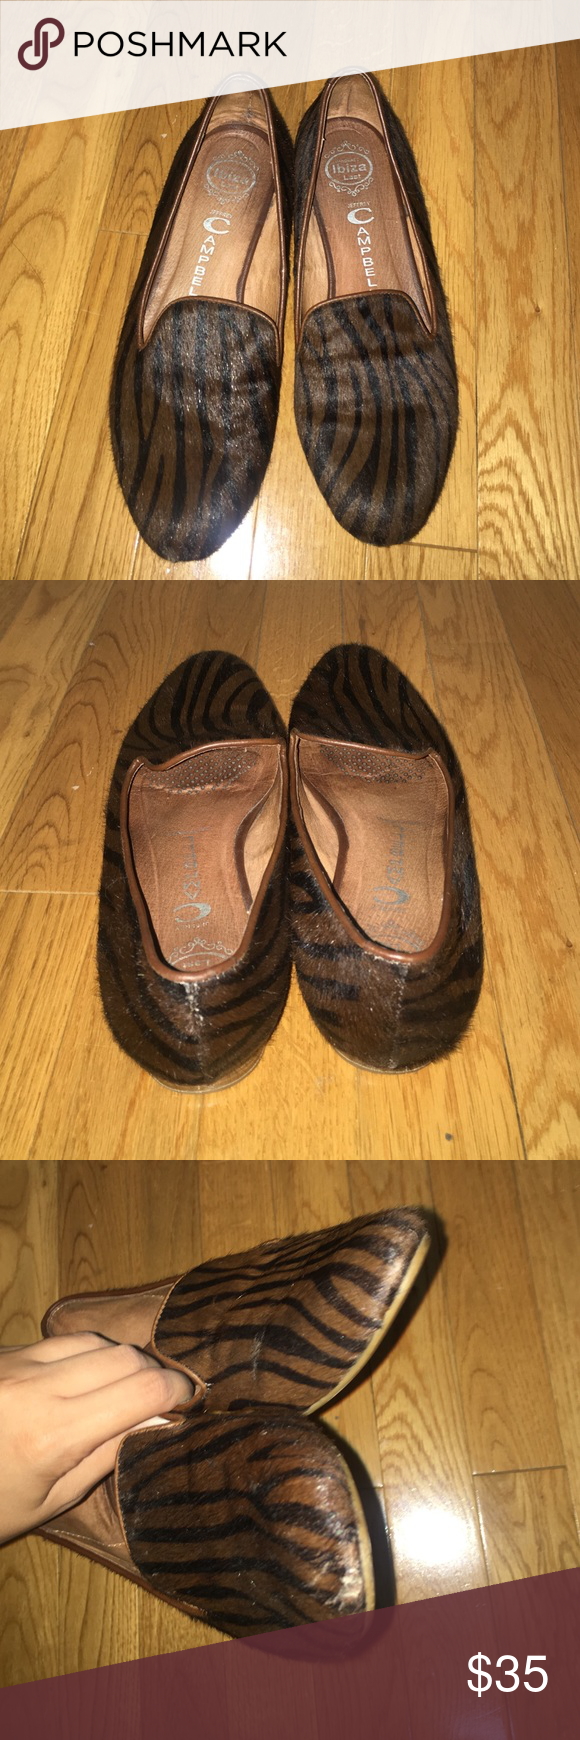 Jeffrey Campbell pony hair smoking flats Great pair of smoking flats. Pony hair. Size 7.5. Only sign of wear on the front but can't tell when wearing as shown in pictures Jeffrey Campbell Shoes Flats & Loafers